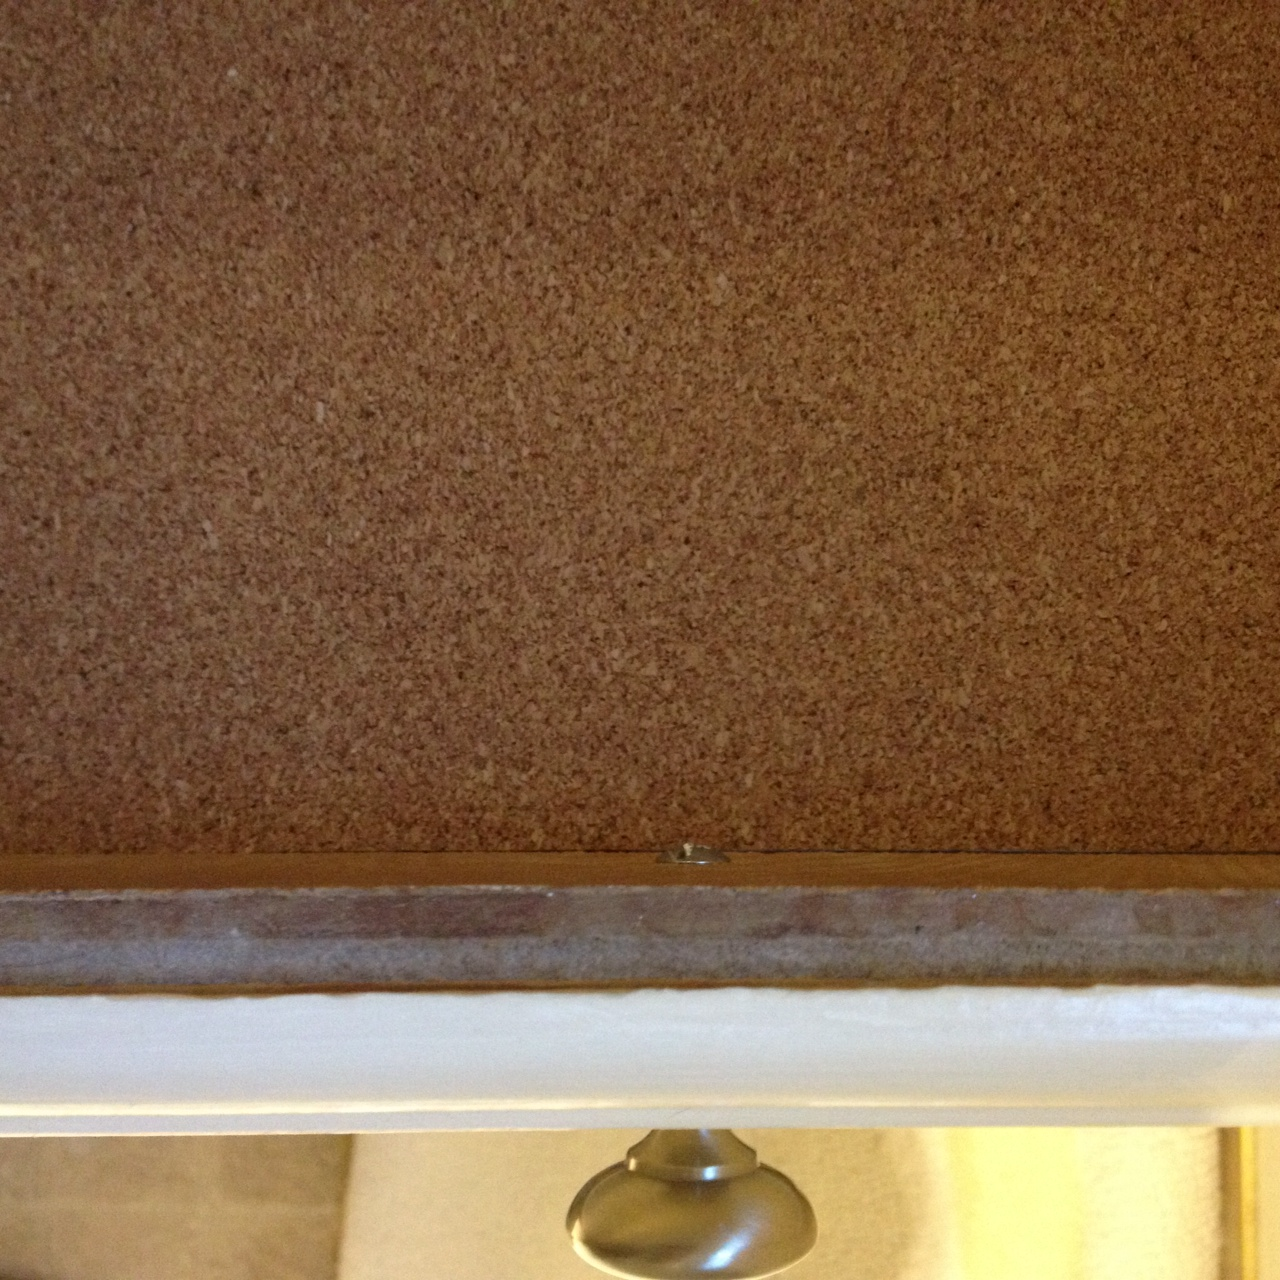 Merveilleux Cork Shelf Liner A Clean Sustainable Touch For Cabinets | Greengopost.com